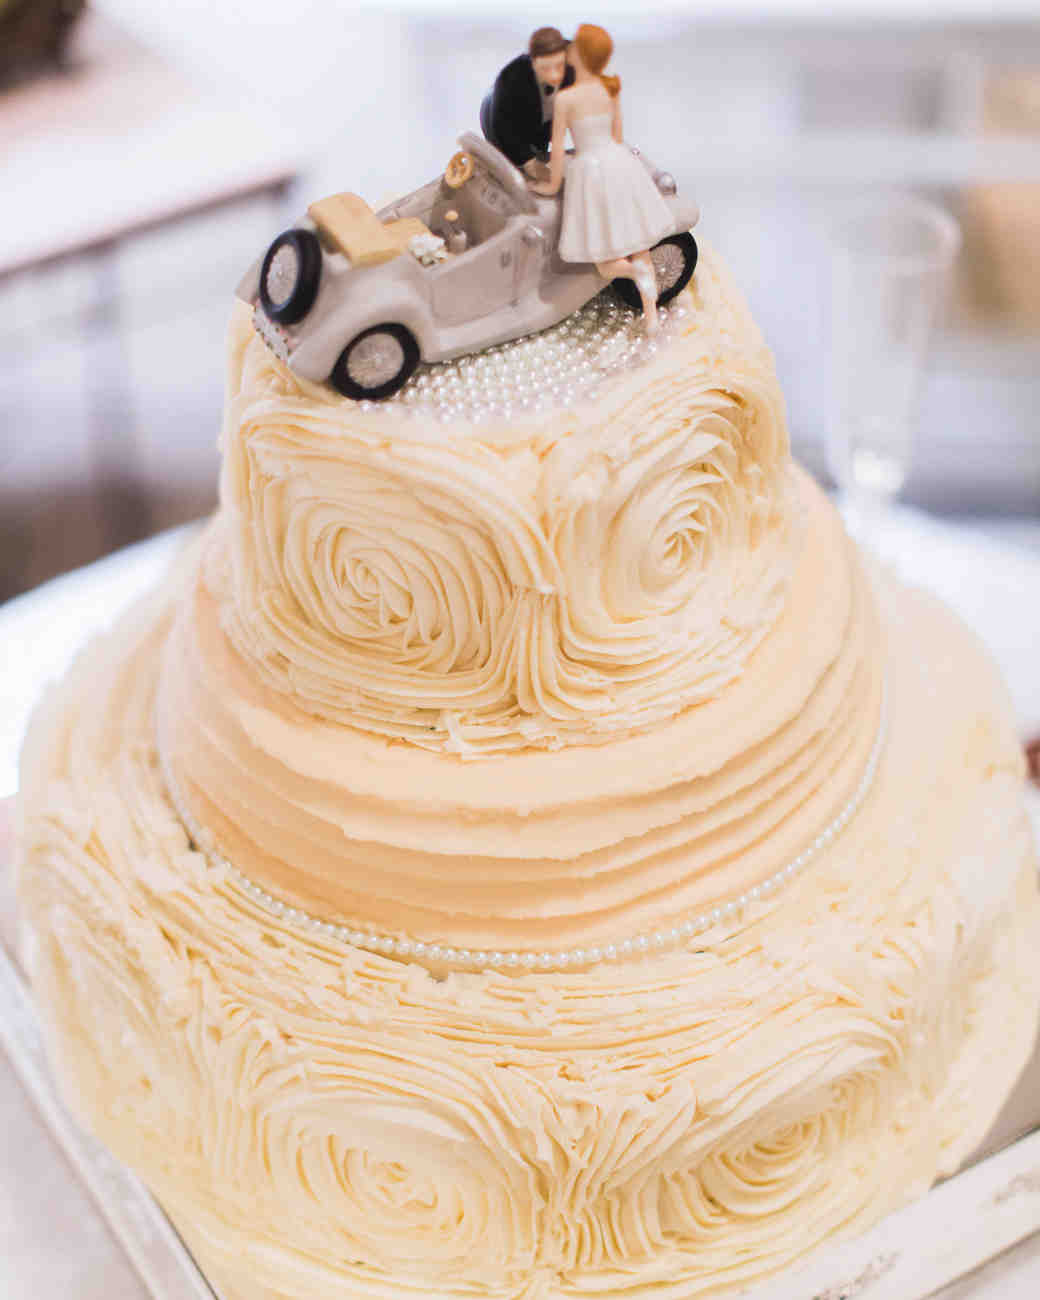 Wedding Cake with Rose Frosting Designs